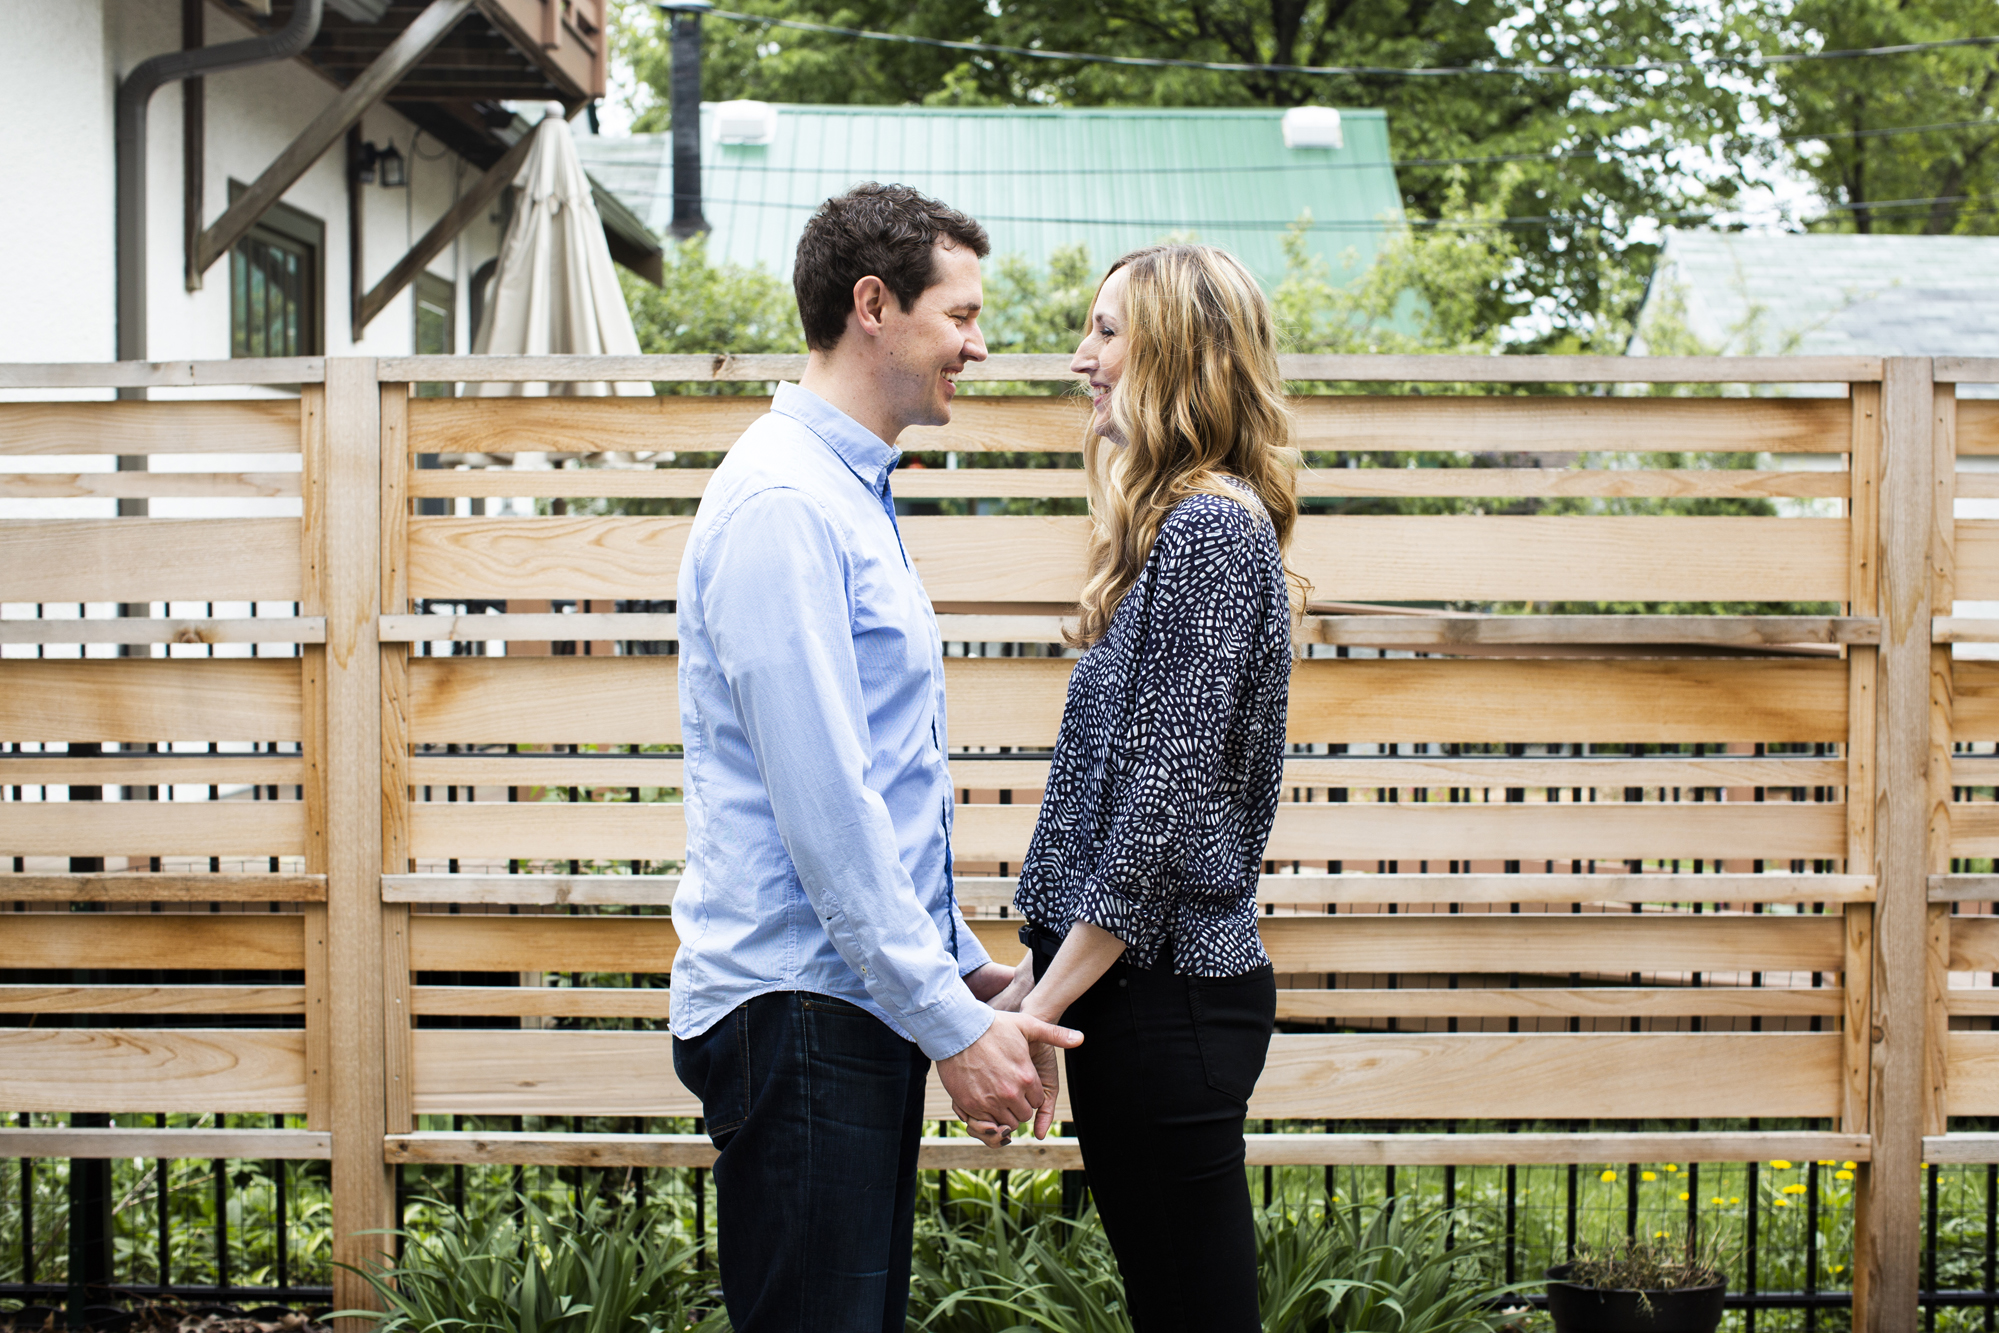 Minneapolis Engagement Session | Photography by Jess Ekstrand | Rivets & Roses